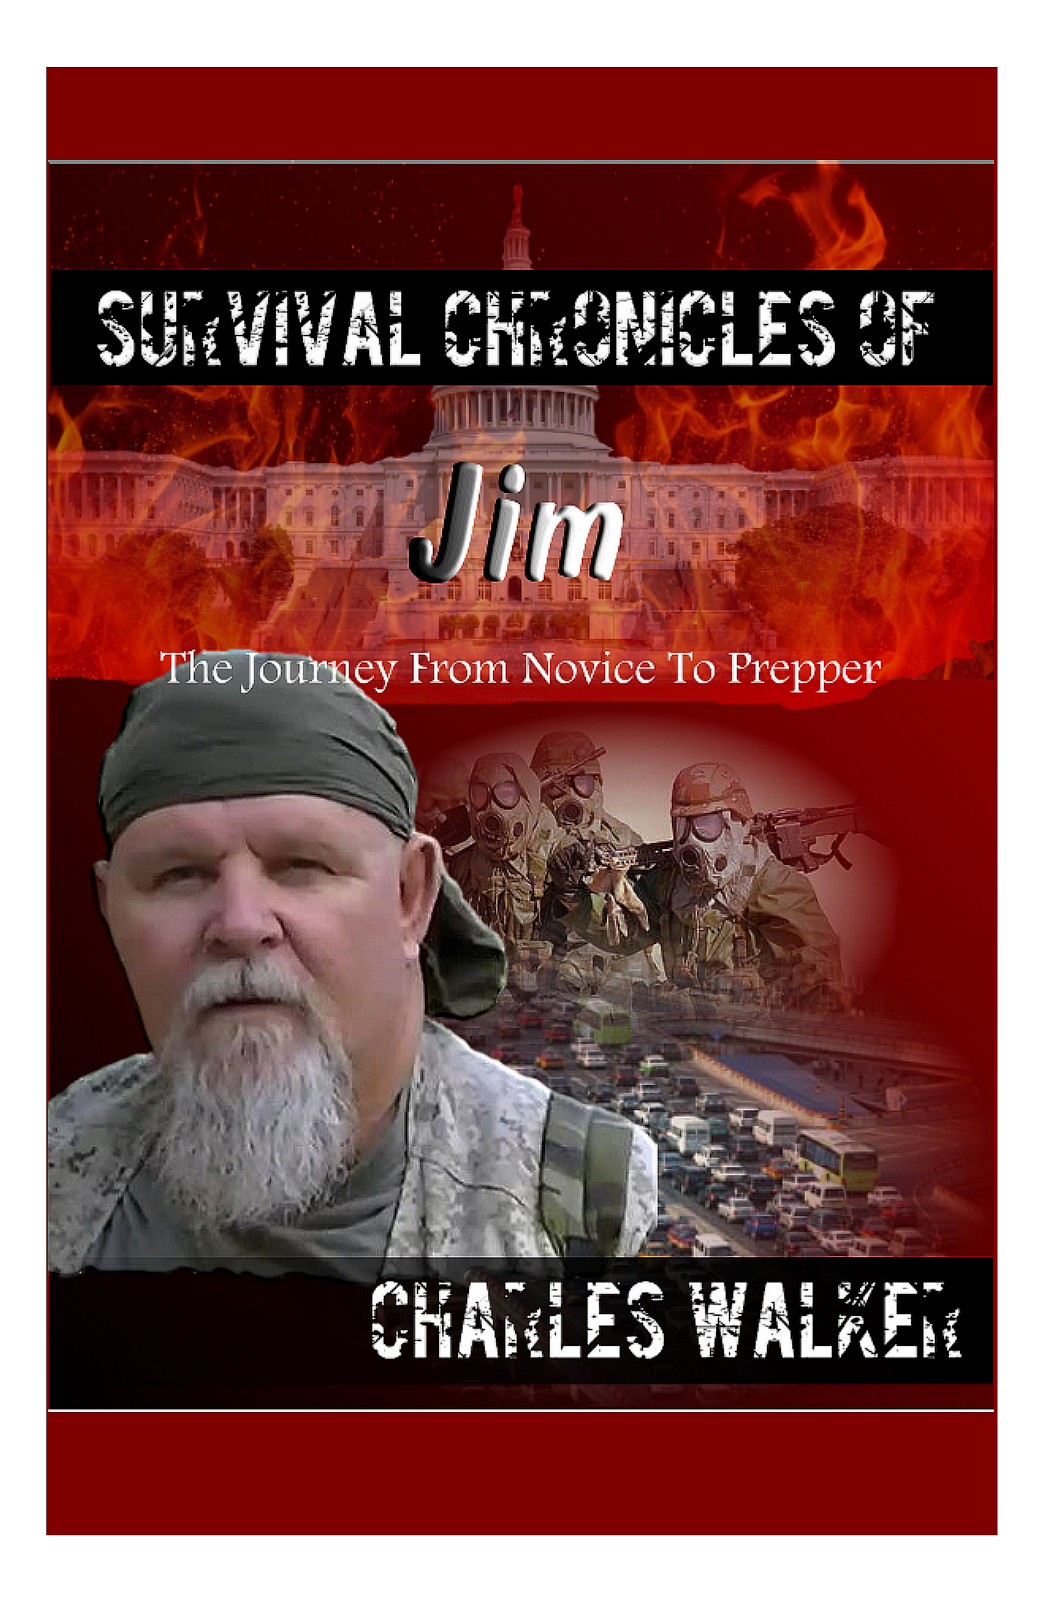 The Survival Chronicles of Jim